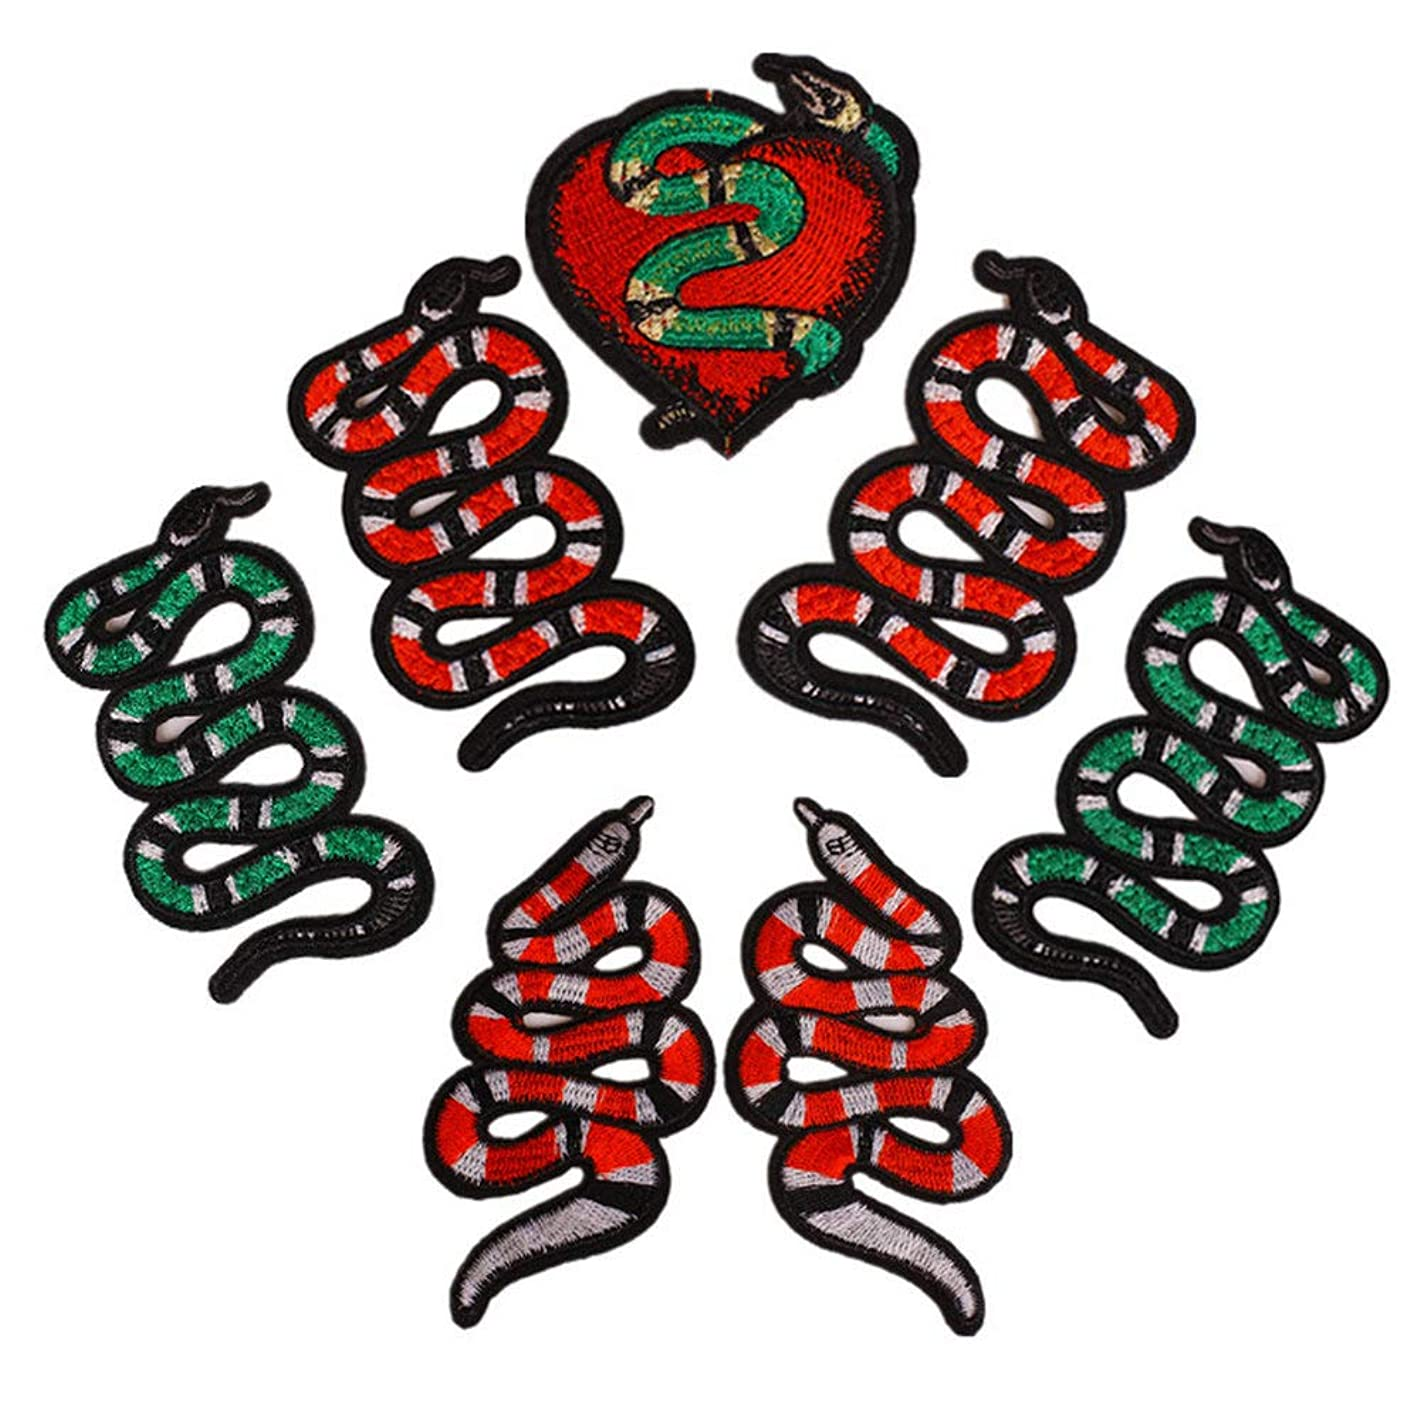 7 Pcs Snake Cloth Paste Embroidered Applique Patches Stickers Ornament Badge Iron on Patch for Clothing DIY T-Shirt Jeans Bags Accessories